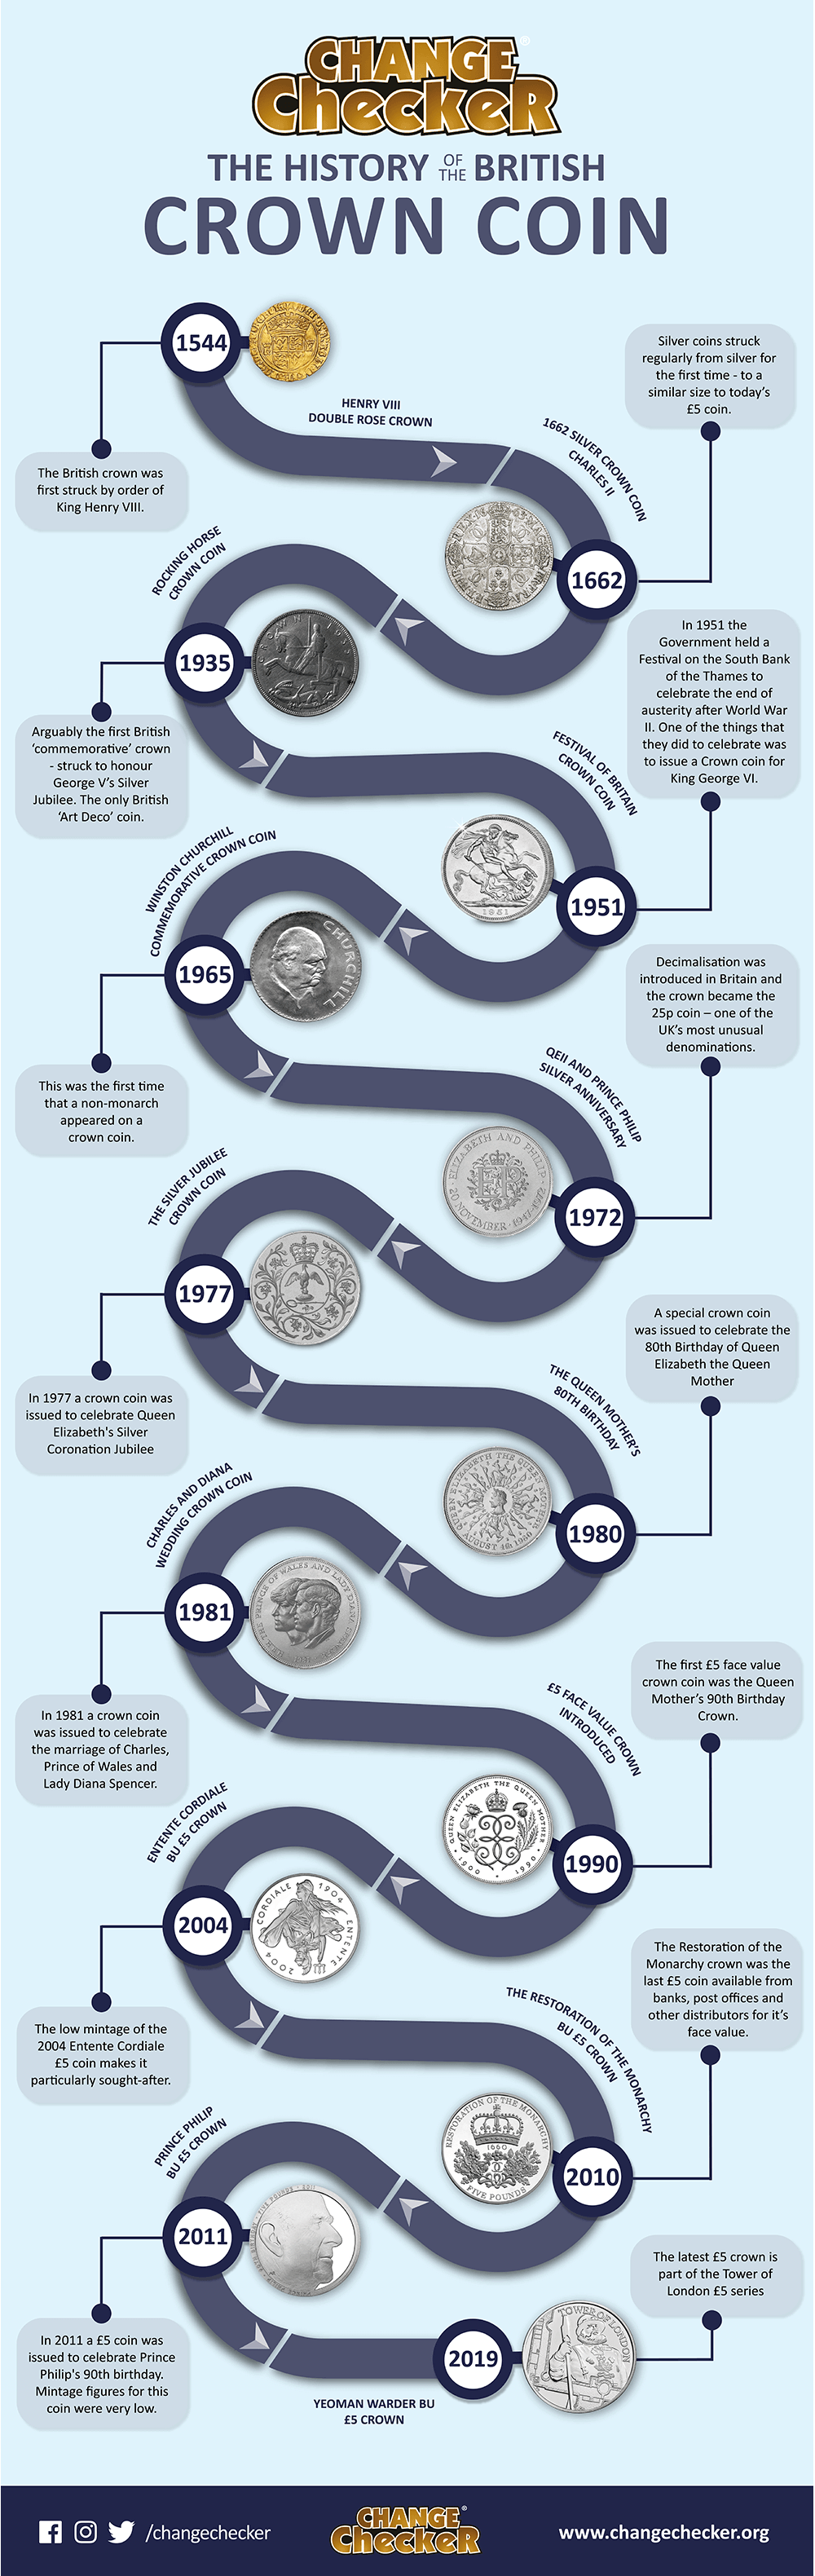 The History of the British Crown Coin